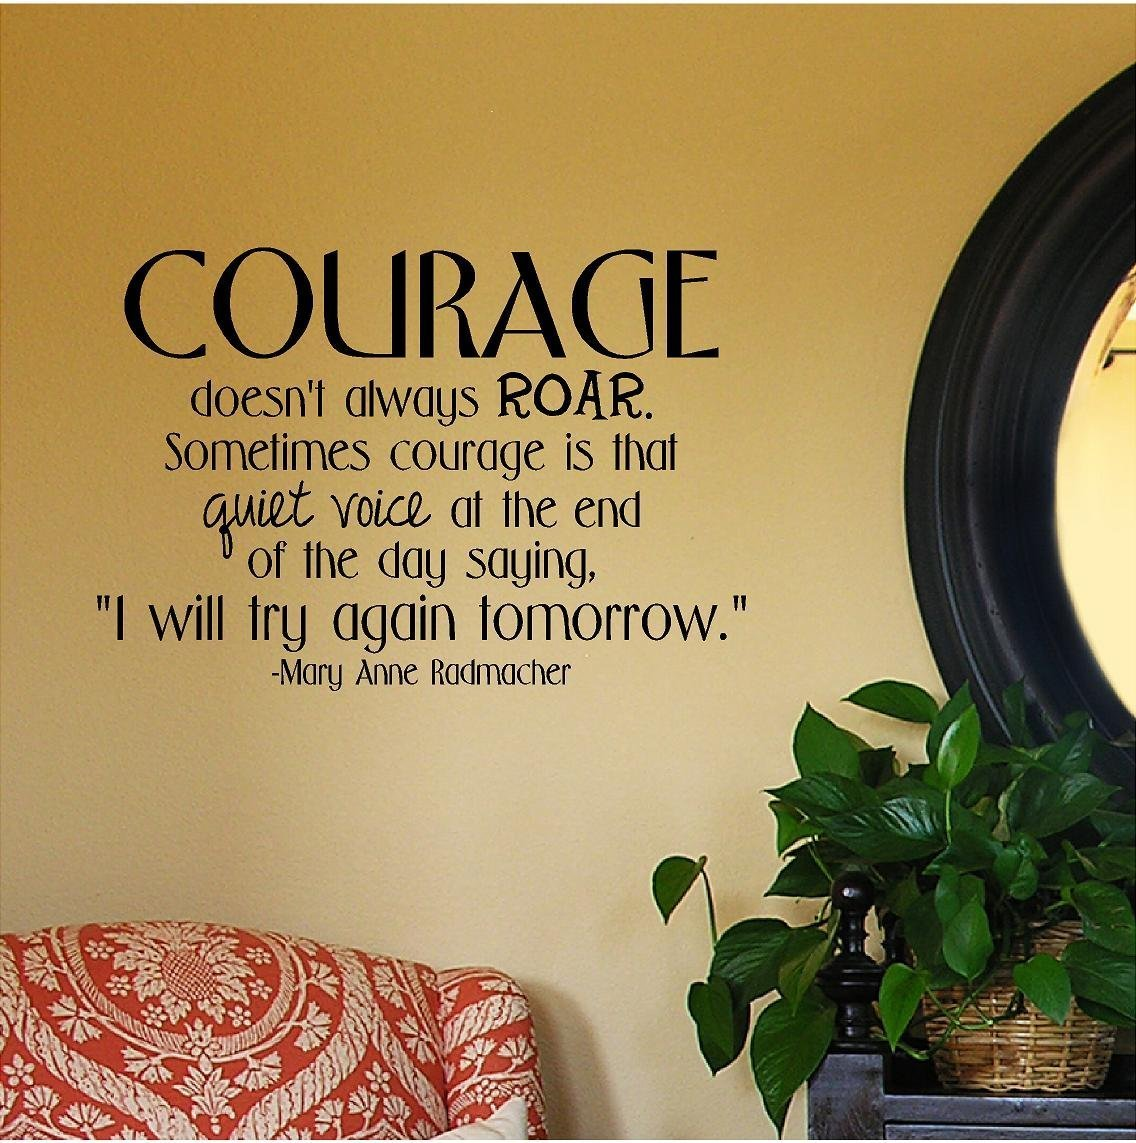 Courage Doesn't Always Roar wall saying vinyl lettering art decal quote sticker home decal